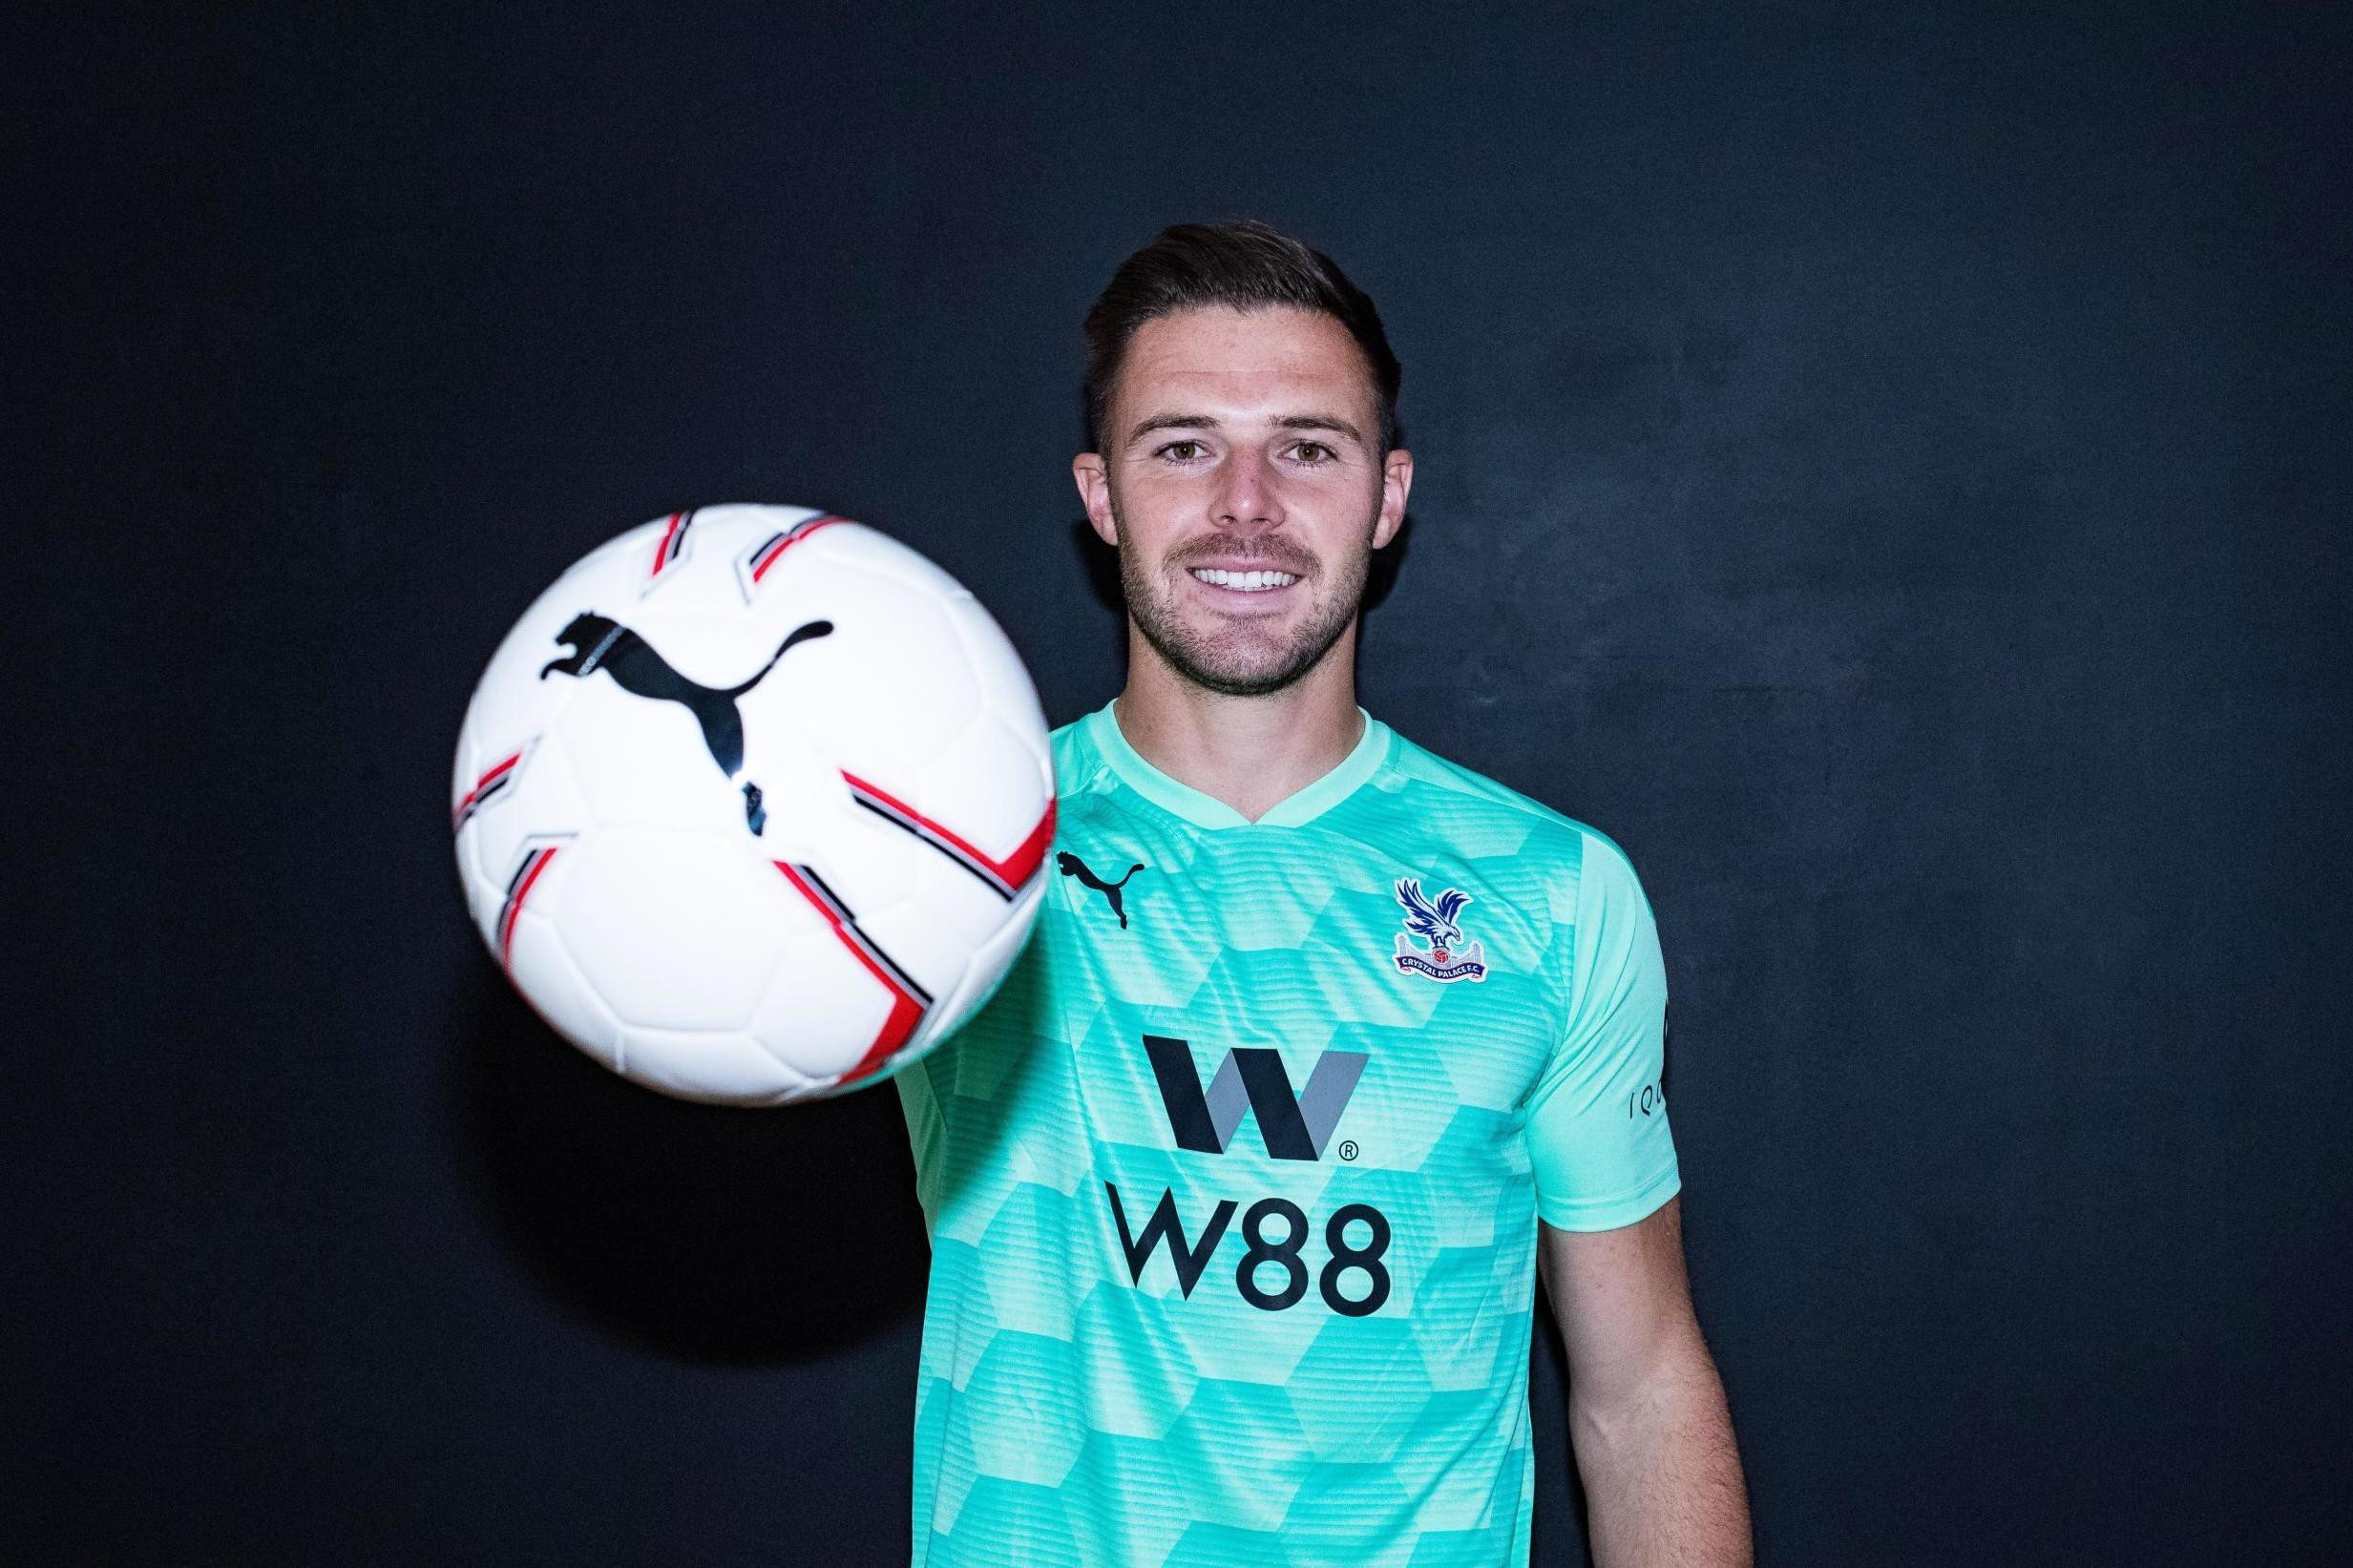 Crystal Palace goalkeeper, Jack Butland tests positive for coronavirus